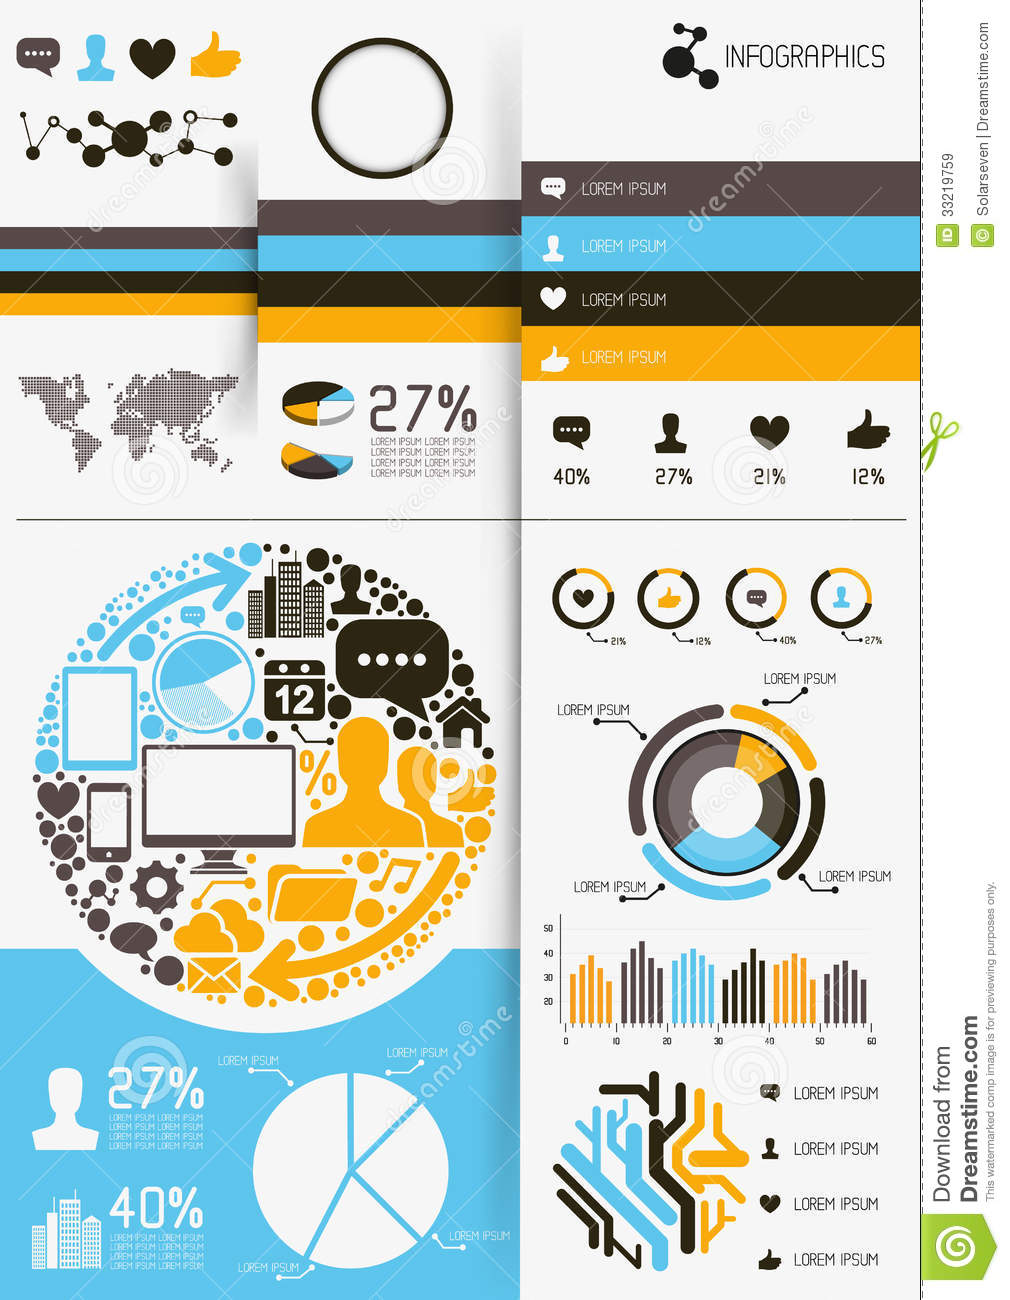 Free vector infographic elements